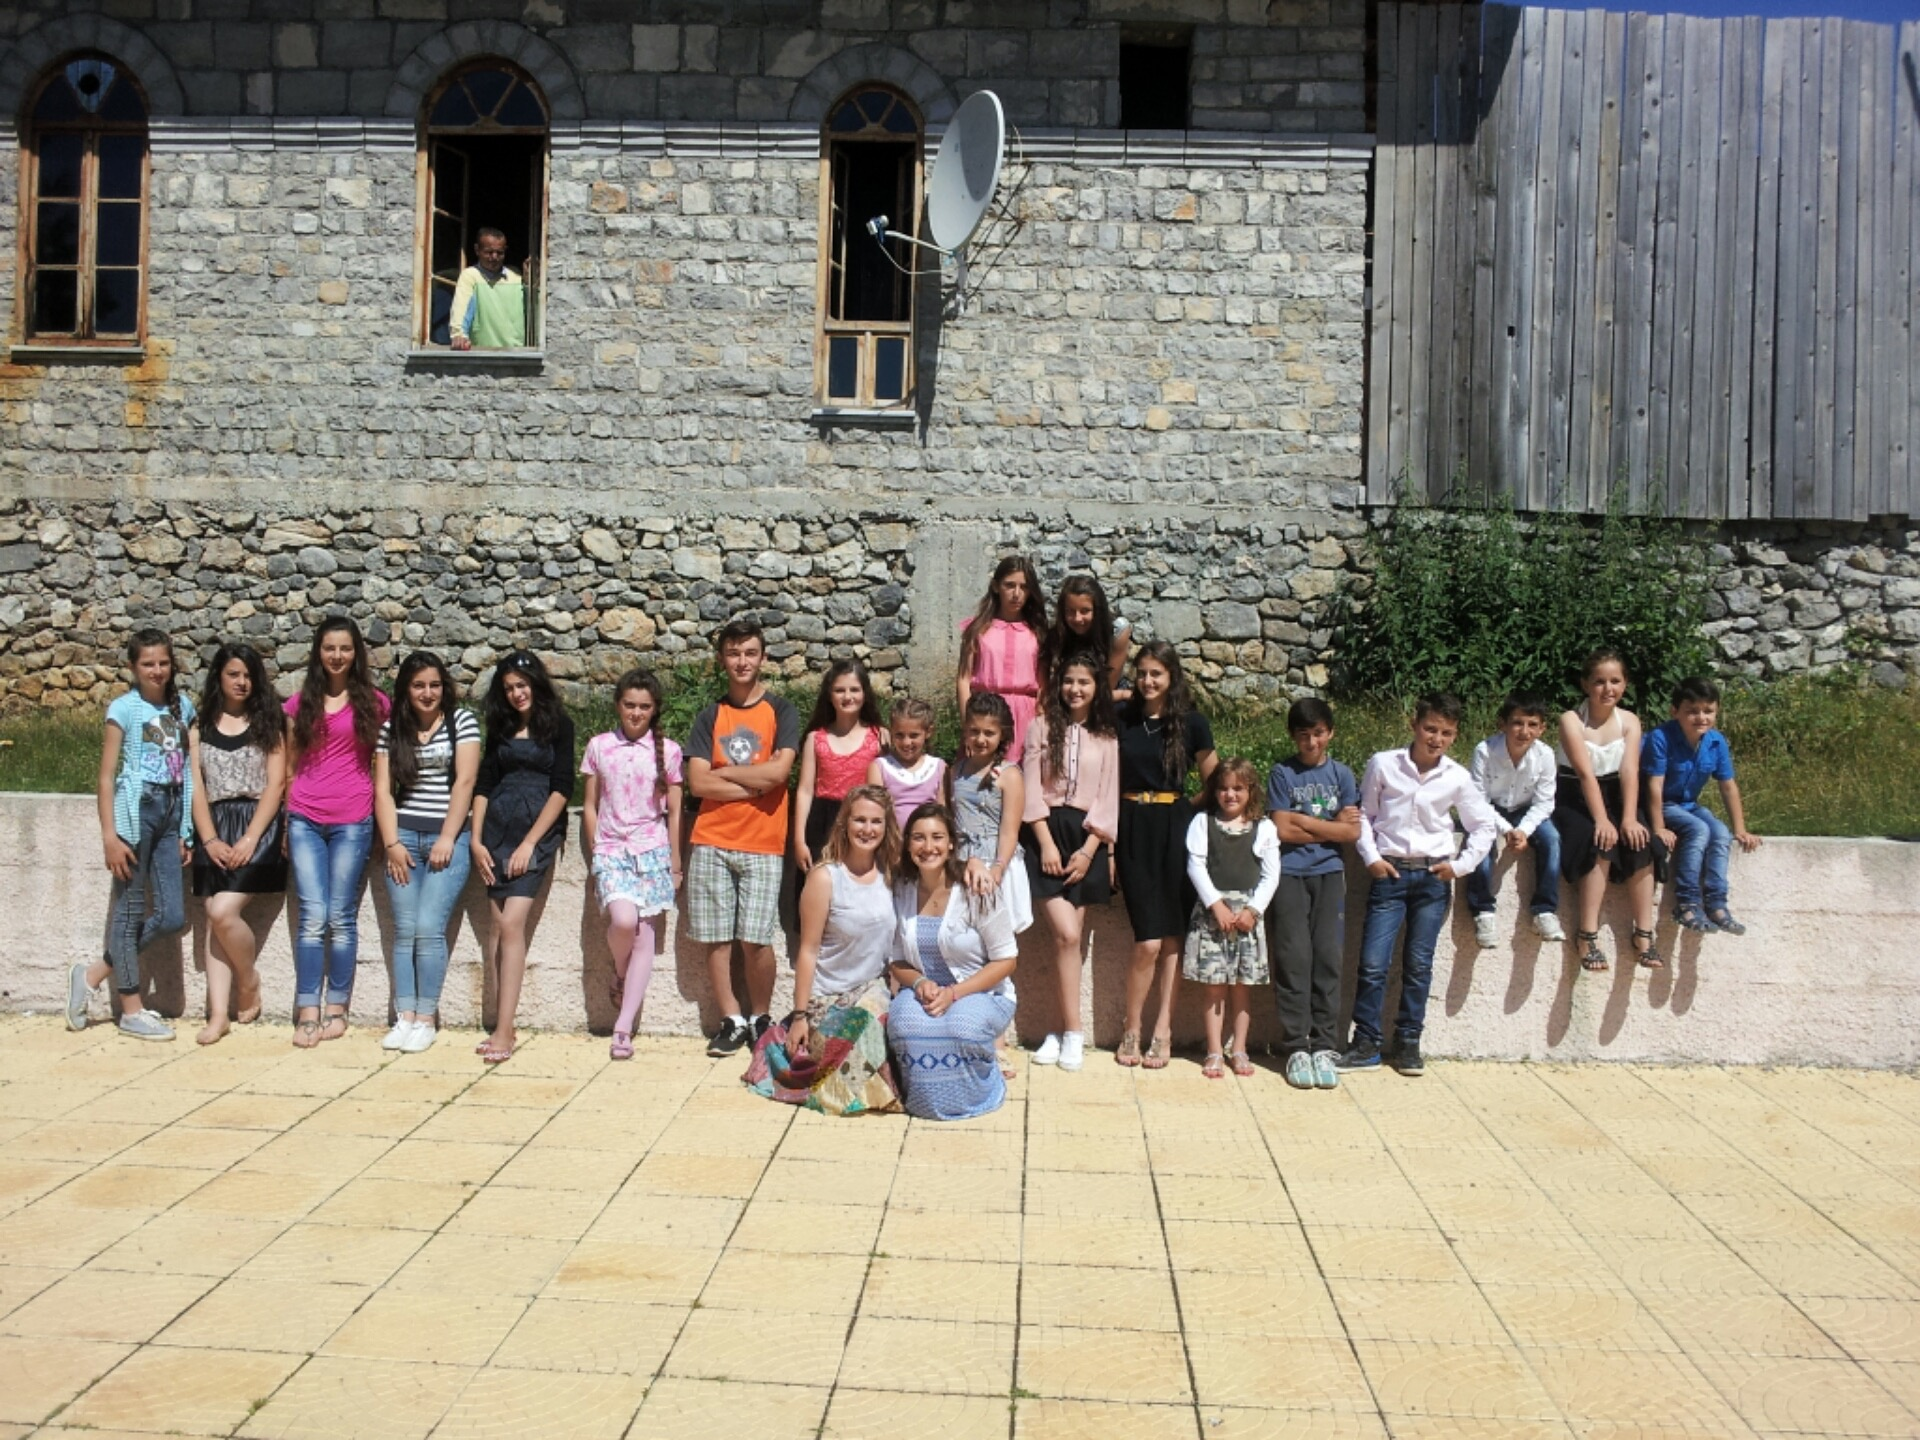 group picture post school dance albania vrith